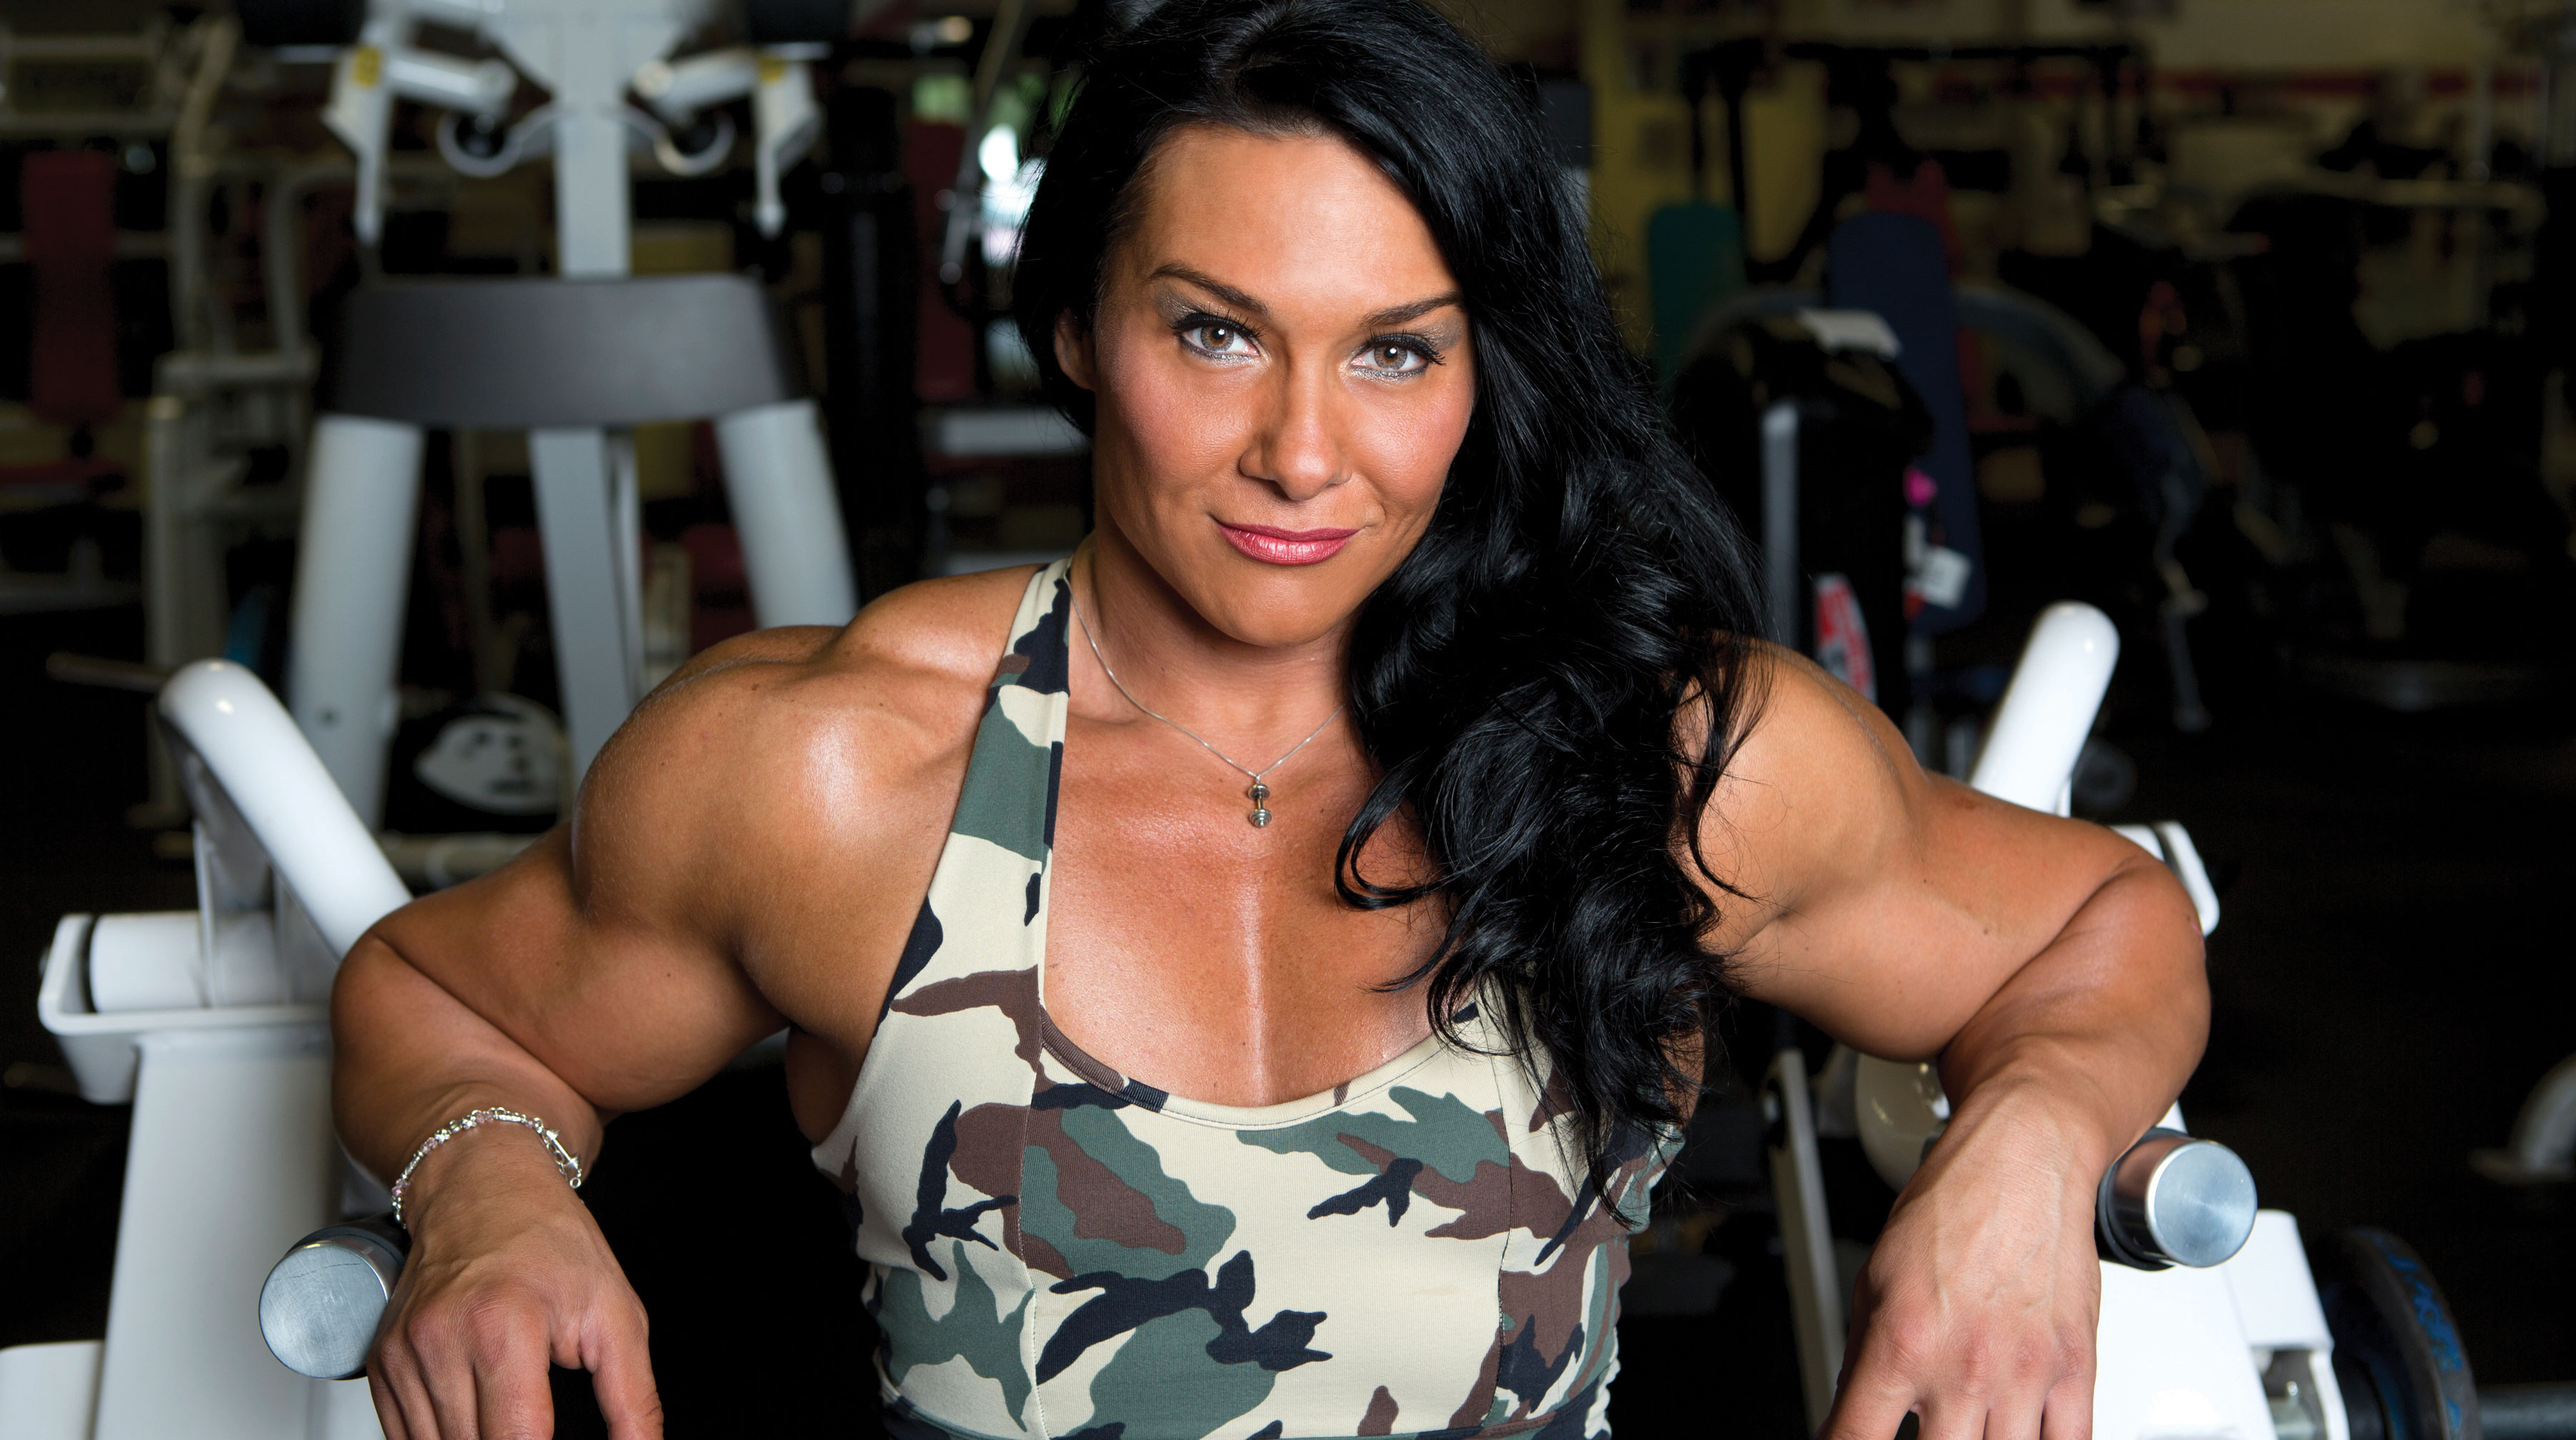 Athlete Spotlight: Alina Popa, #1 Female Bodybuilder in the World